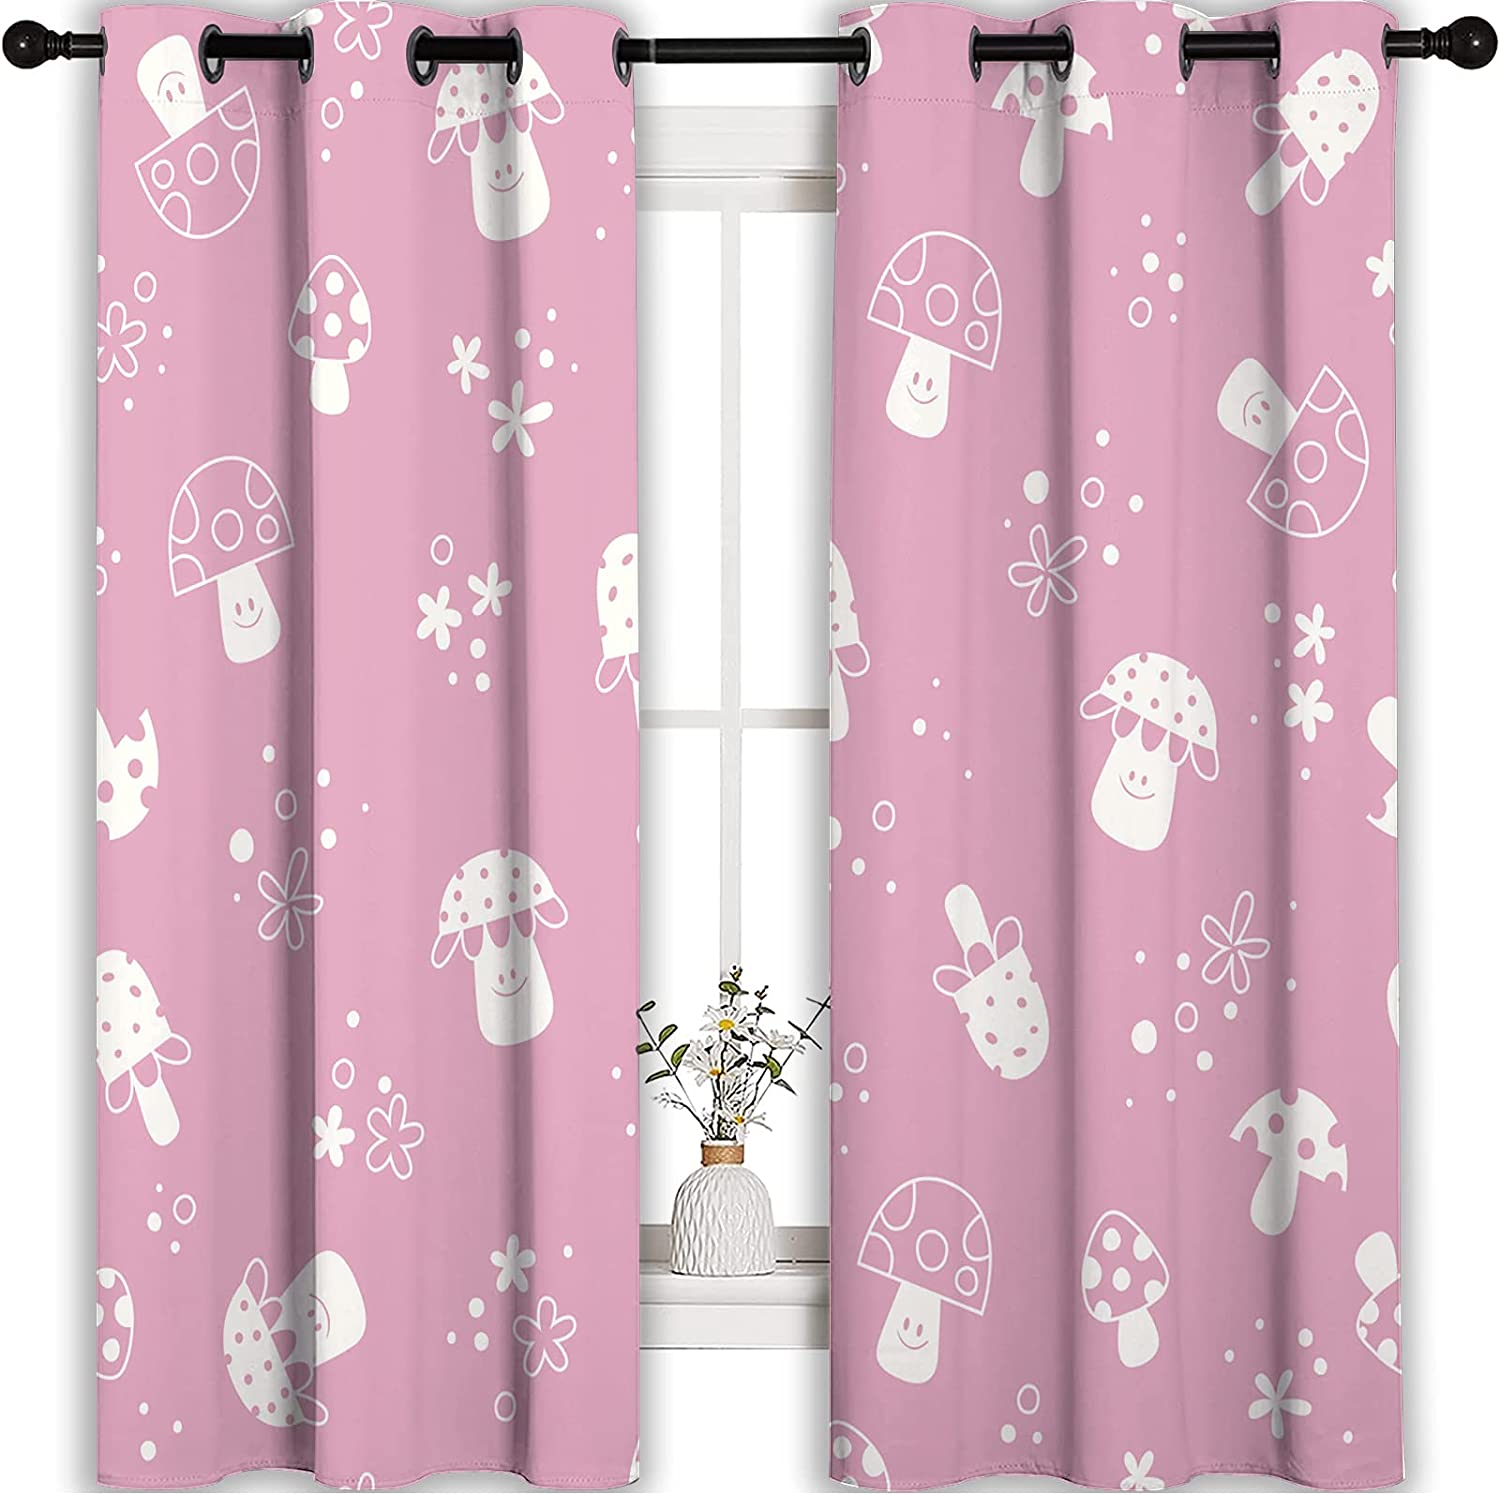 HSERNED Kids Room Window Long-awaited Popularity Curtains P Nature and Mushrooms Flowers